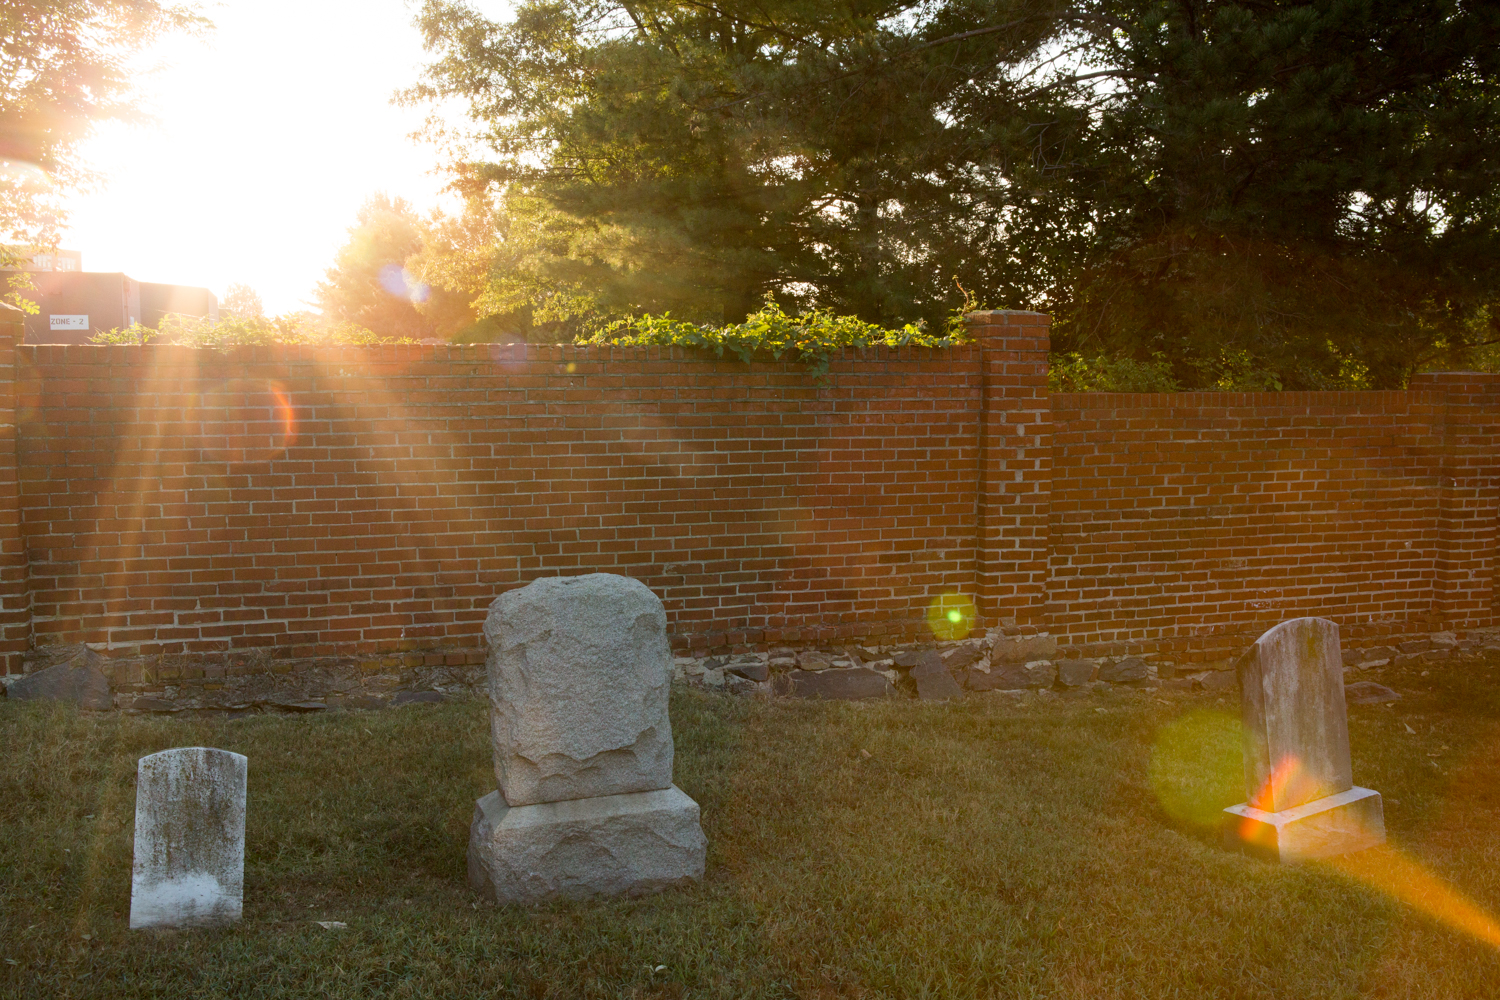 The sun bursts through some trees near several tombstones in the Congressional Cemetery in Washington, D.C.